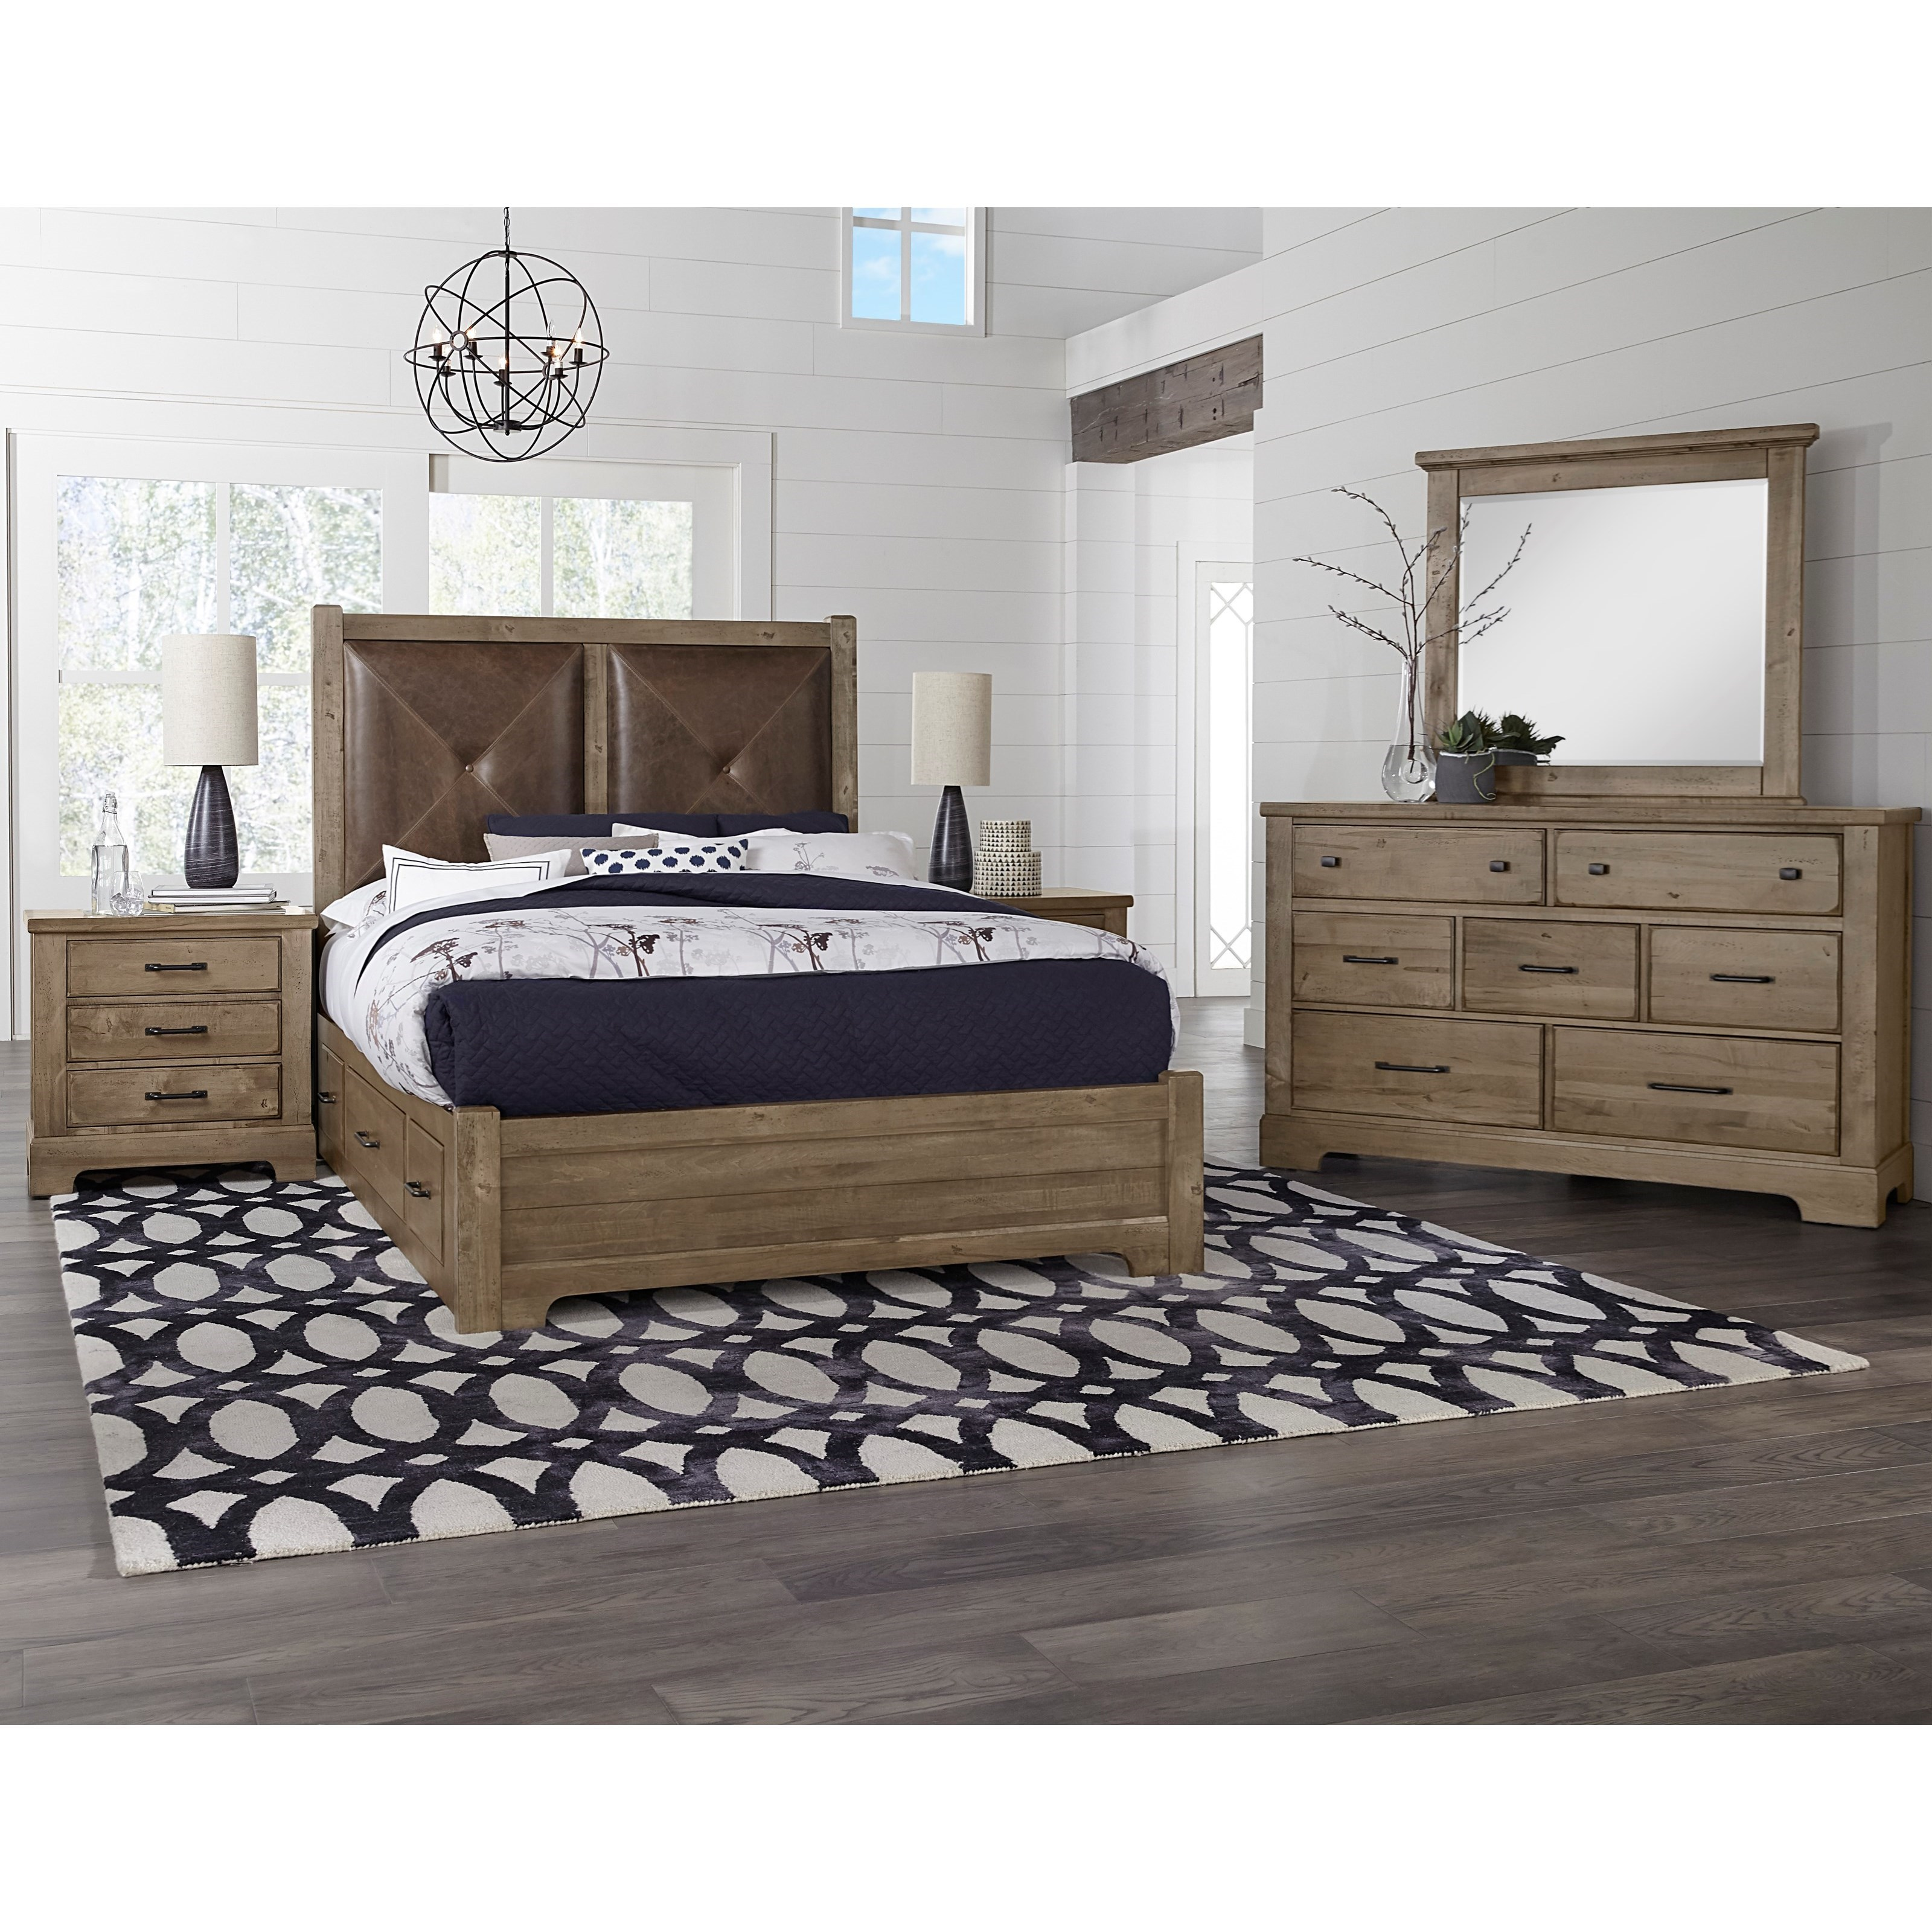 Cool Rustic Queen Bedroom Group by Artisan & Post at Zak's Home